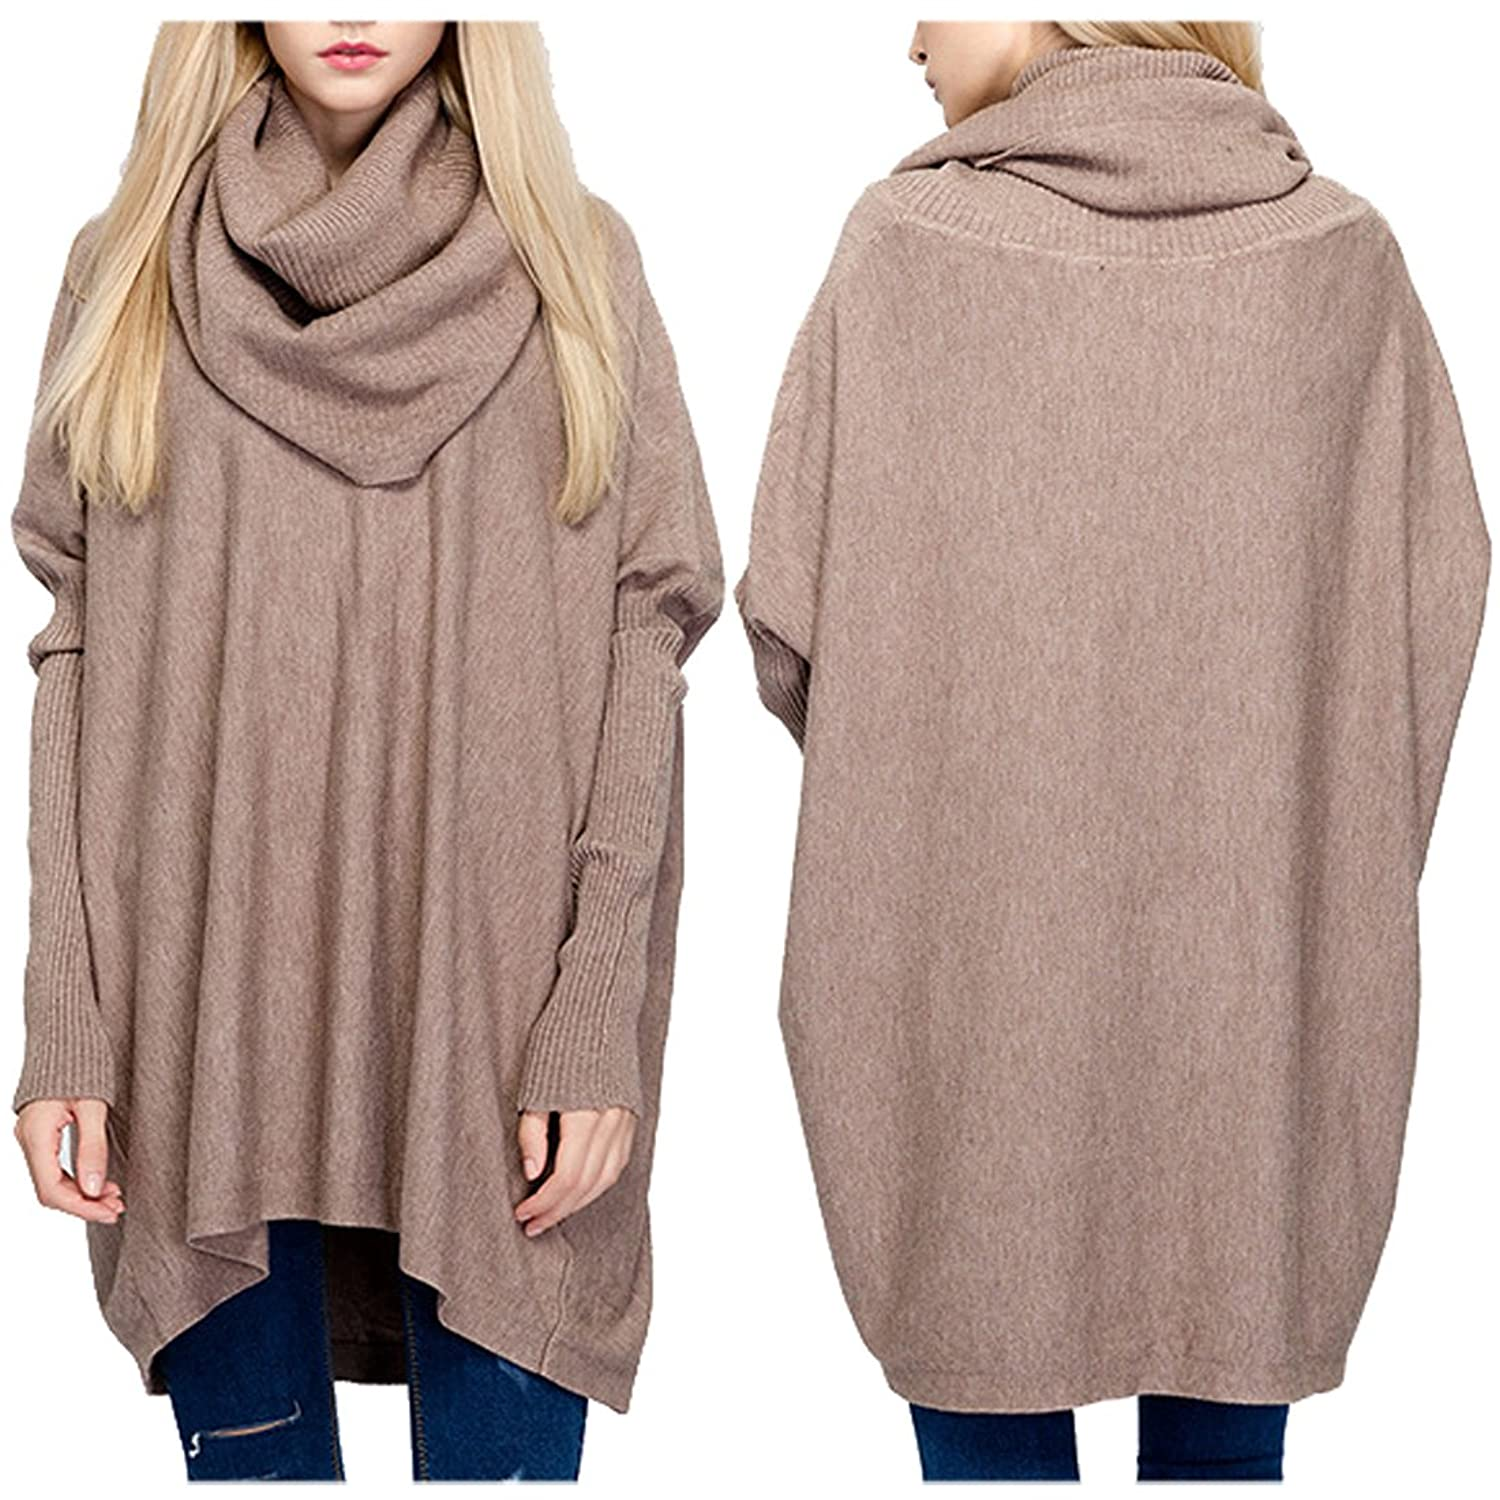 Partiss Women's Turtleneck Maxi Solid Hooded Sweater Blouse